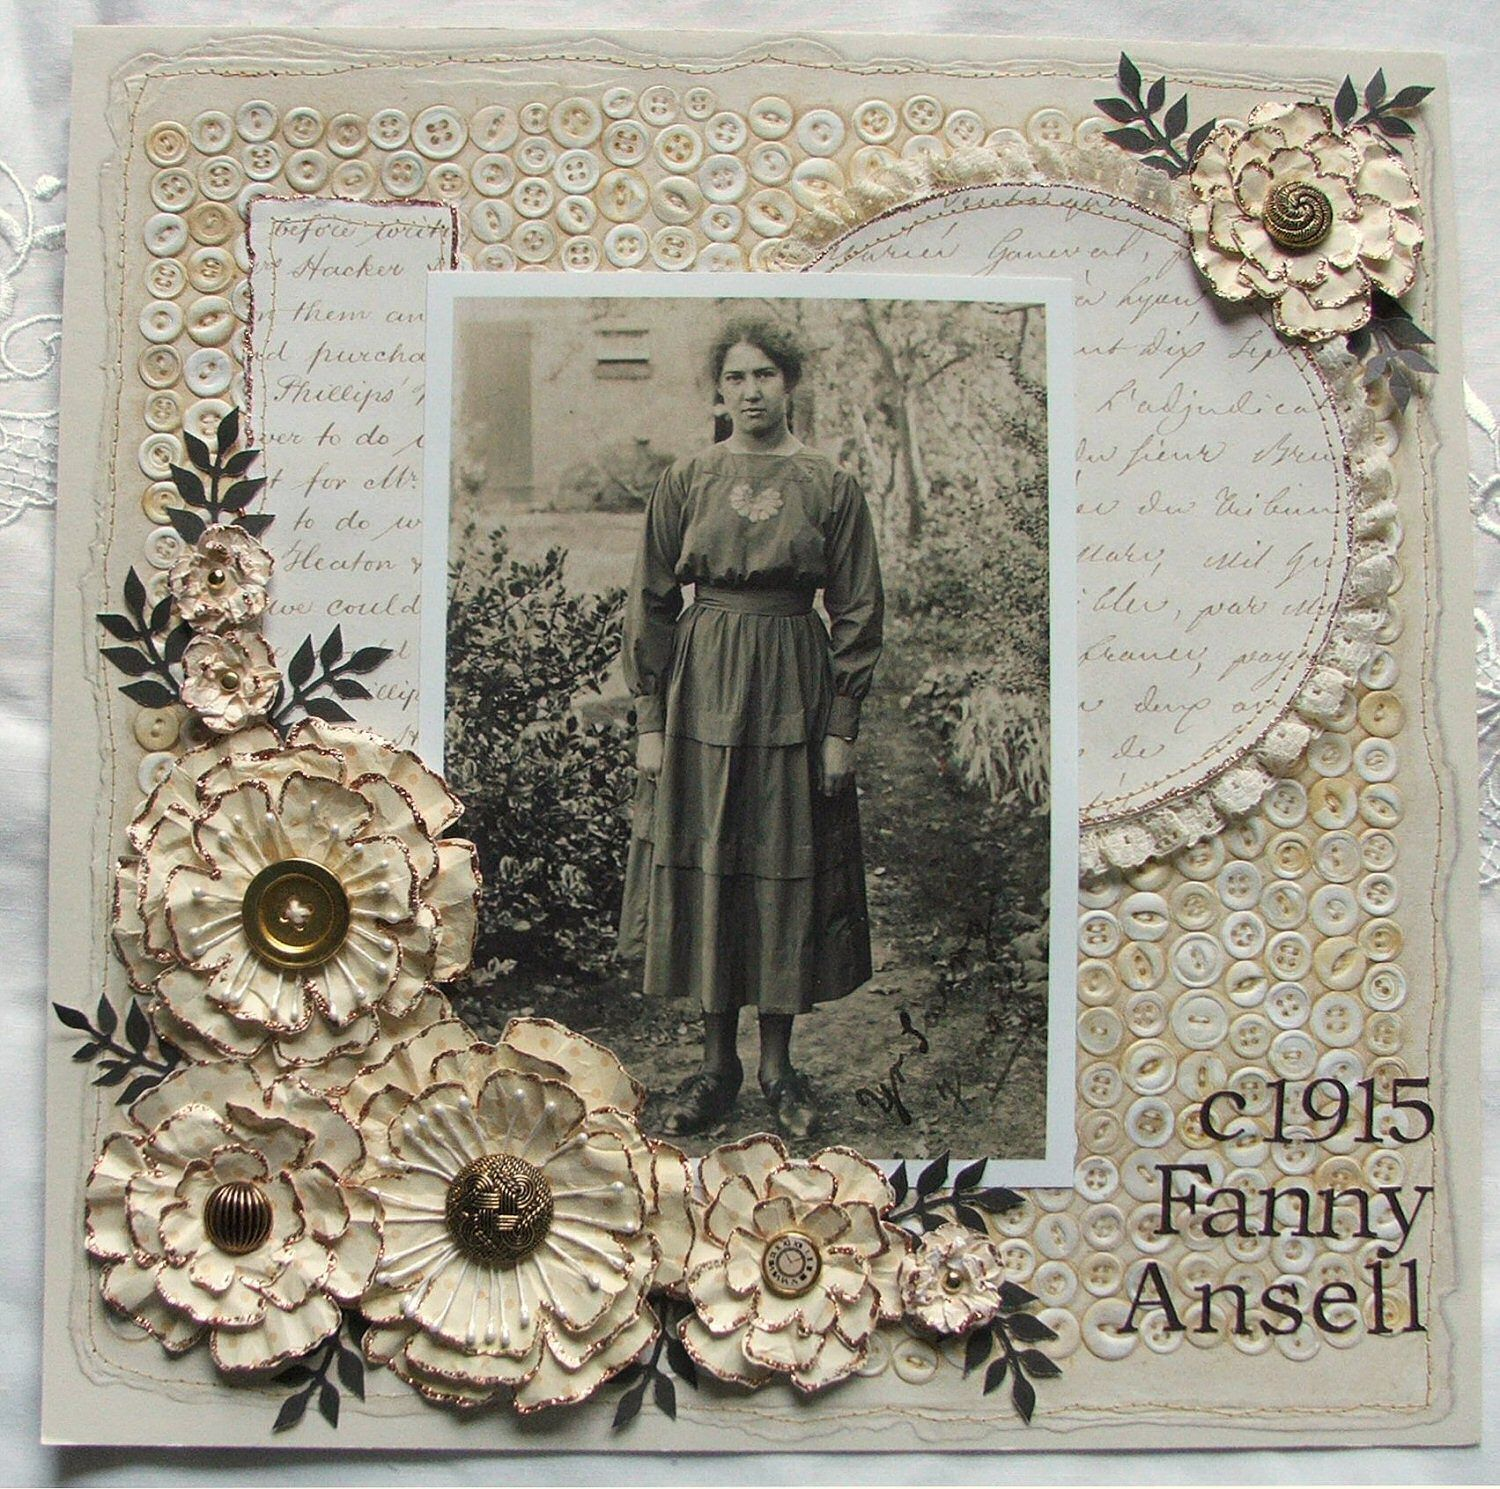 scrapbooking grandmother | Sunday, 6 March 2011